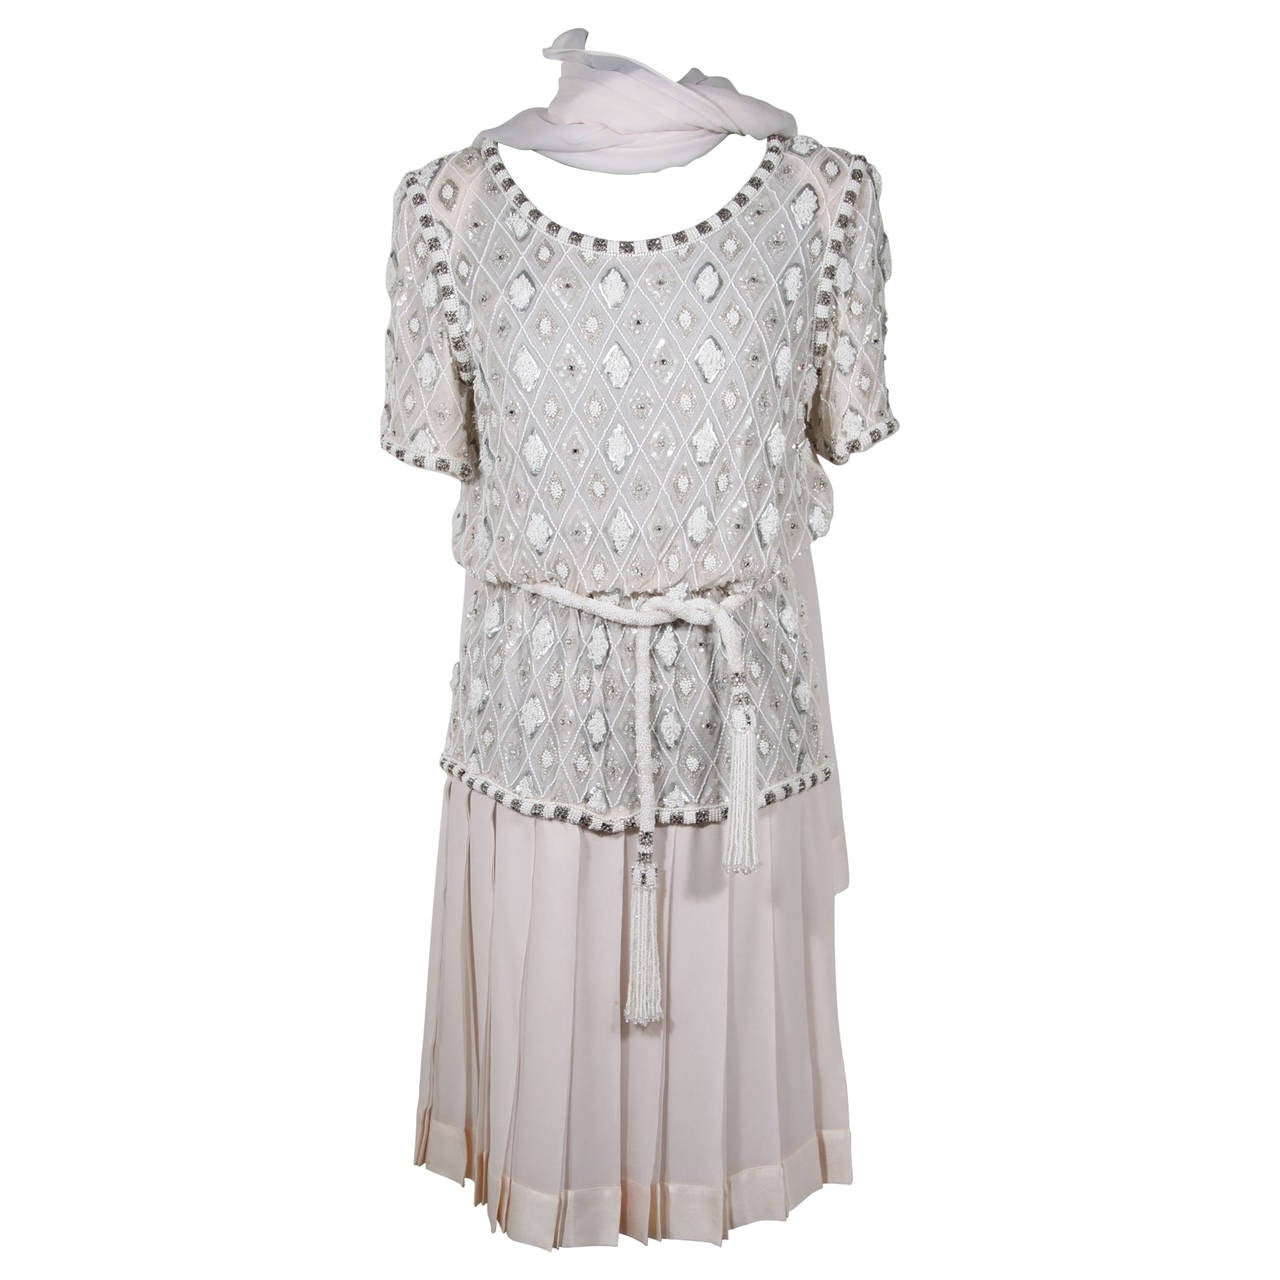 ANDREA ODICINI COUTURE Italian VINTAGE White BEADED DRESS w/ Stole ...